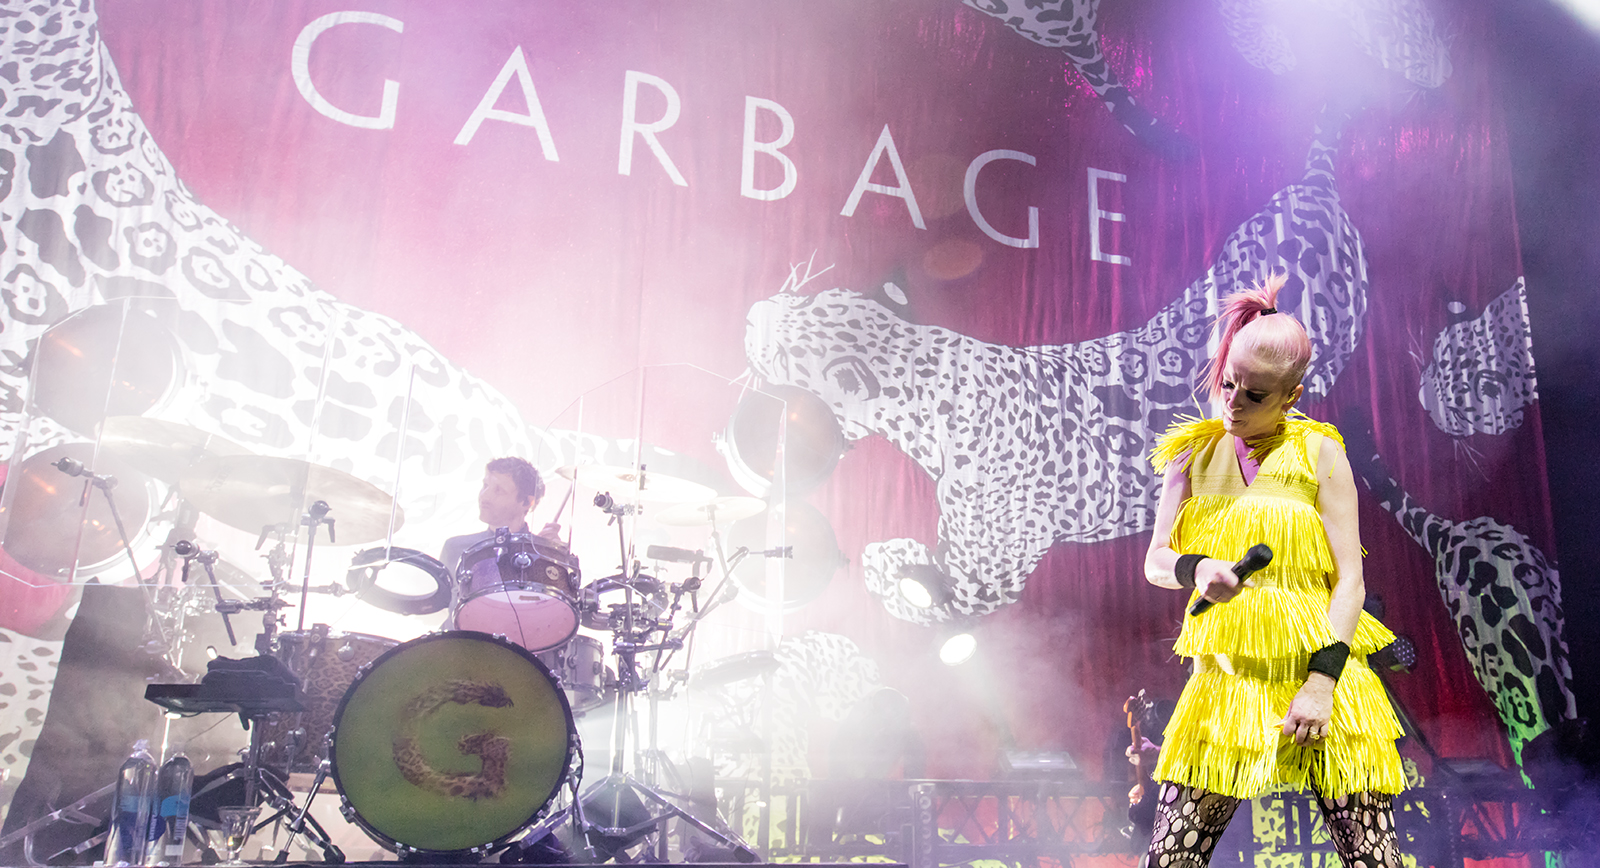 garbage-2016-tour-setlist-san-francisco-masonic-concert-review-fi